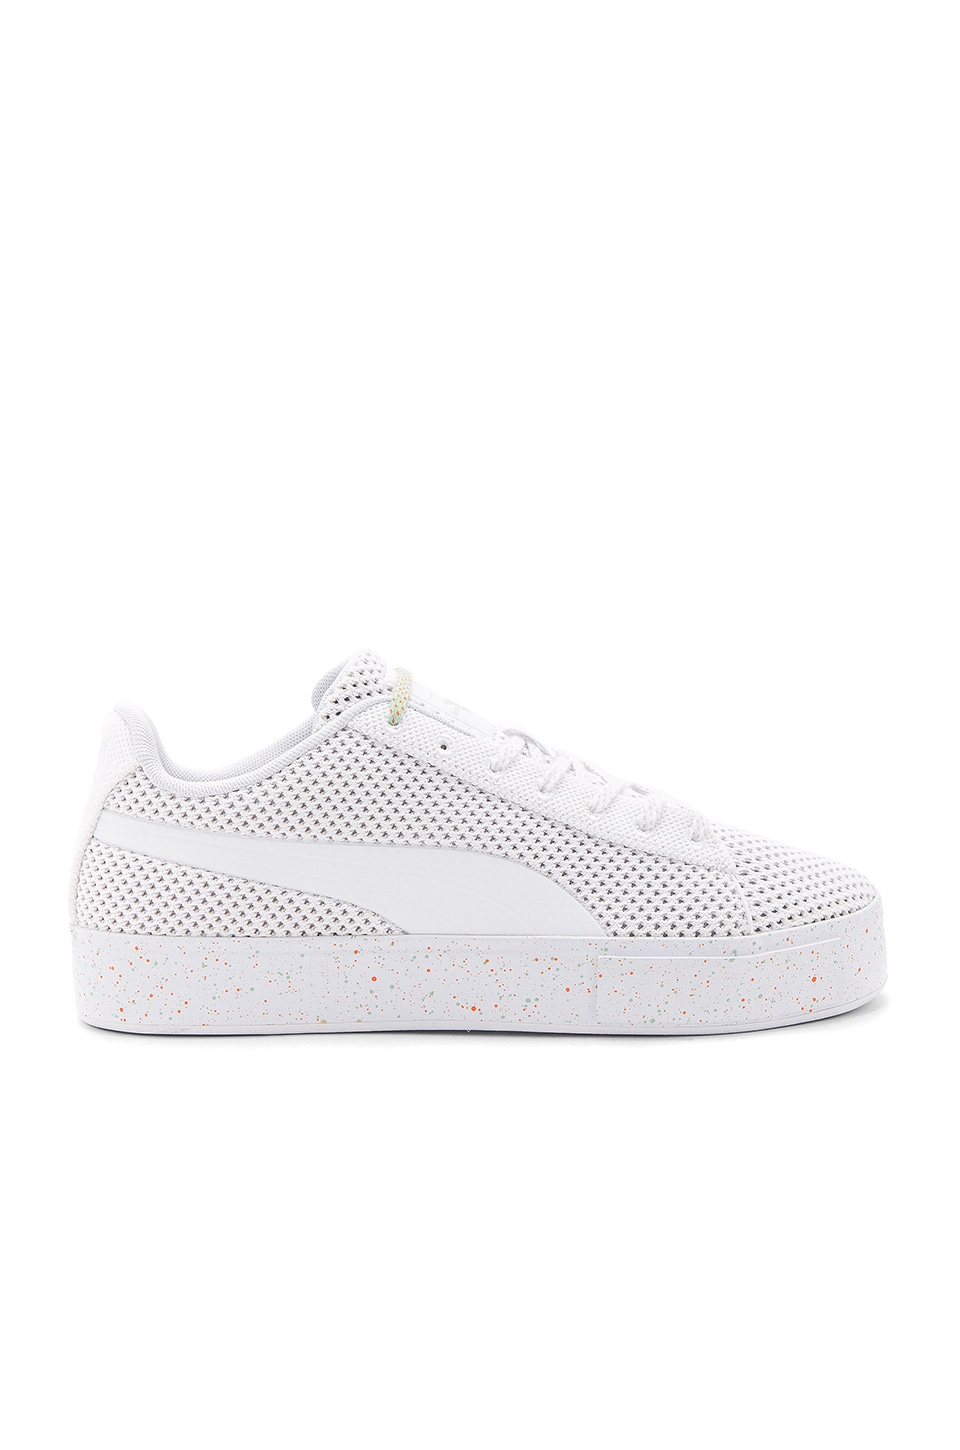 x Daily Paper Platform Knit Splat by Puma Select